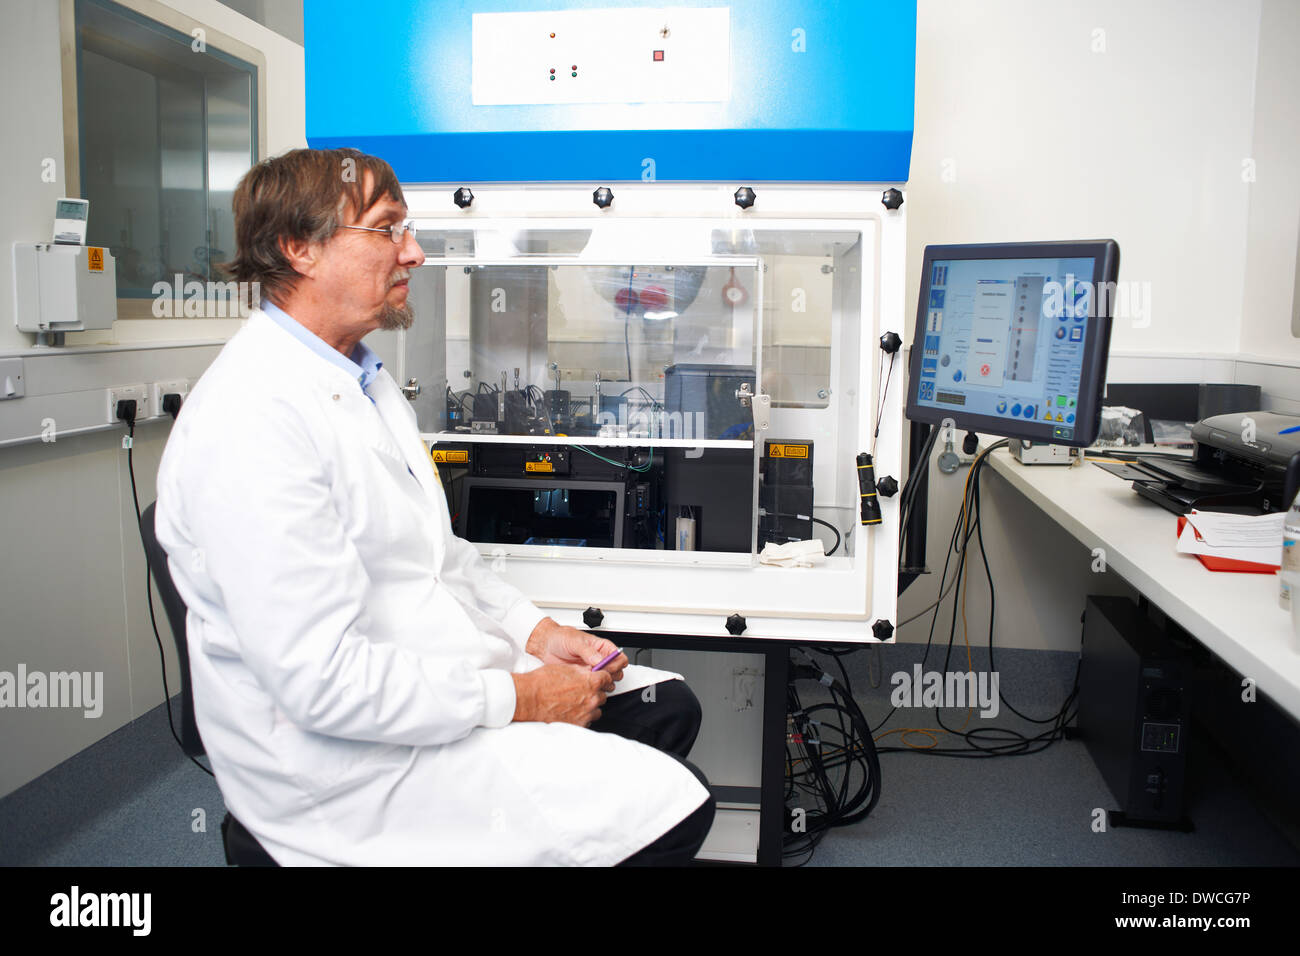 Scientist working in lab with computer and scientific machine - Stock Image